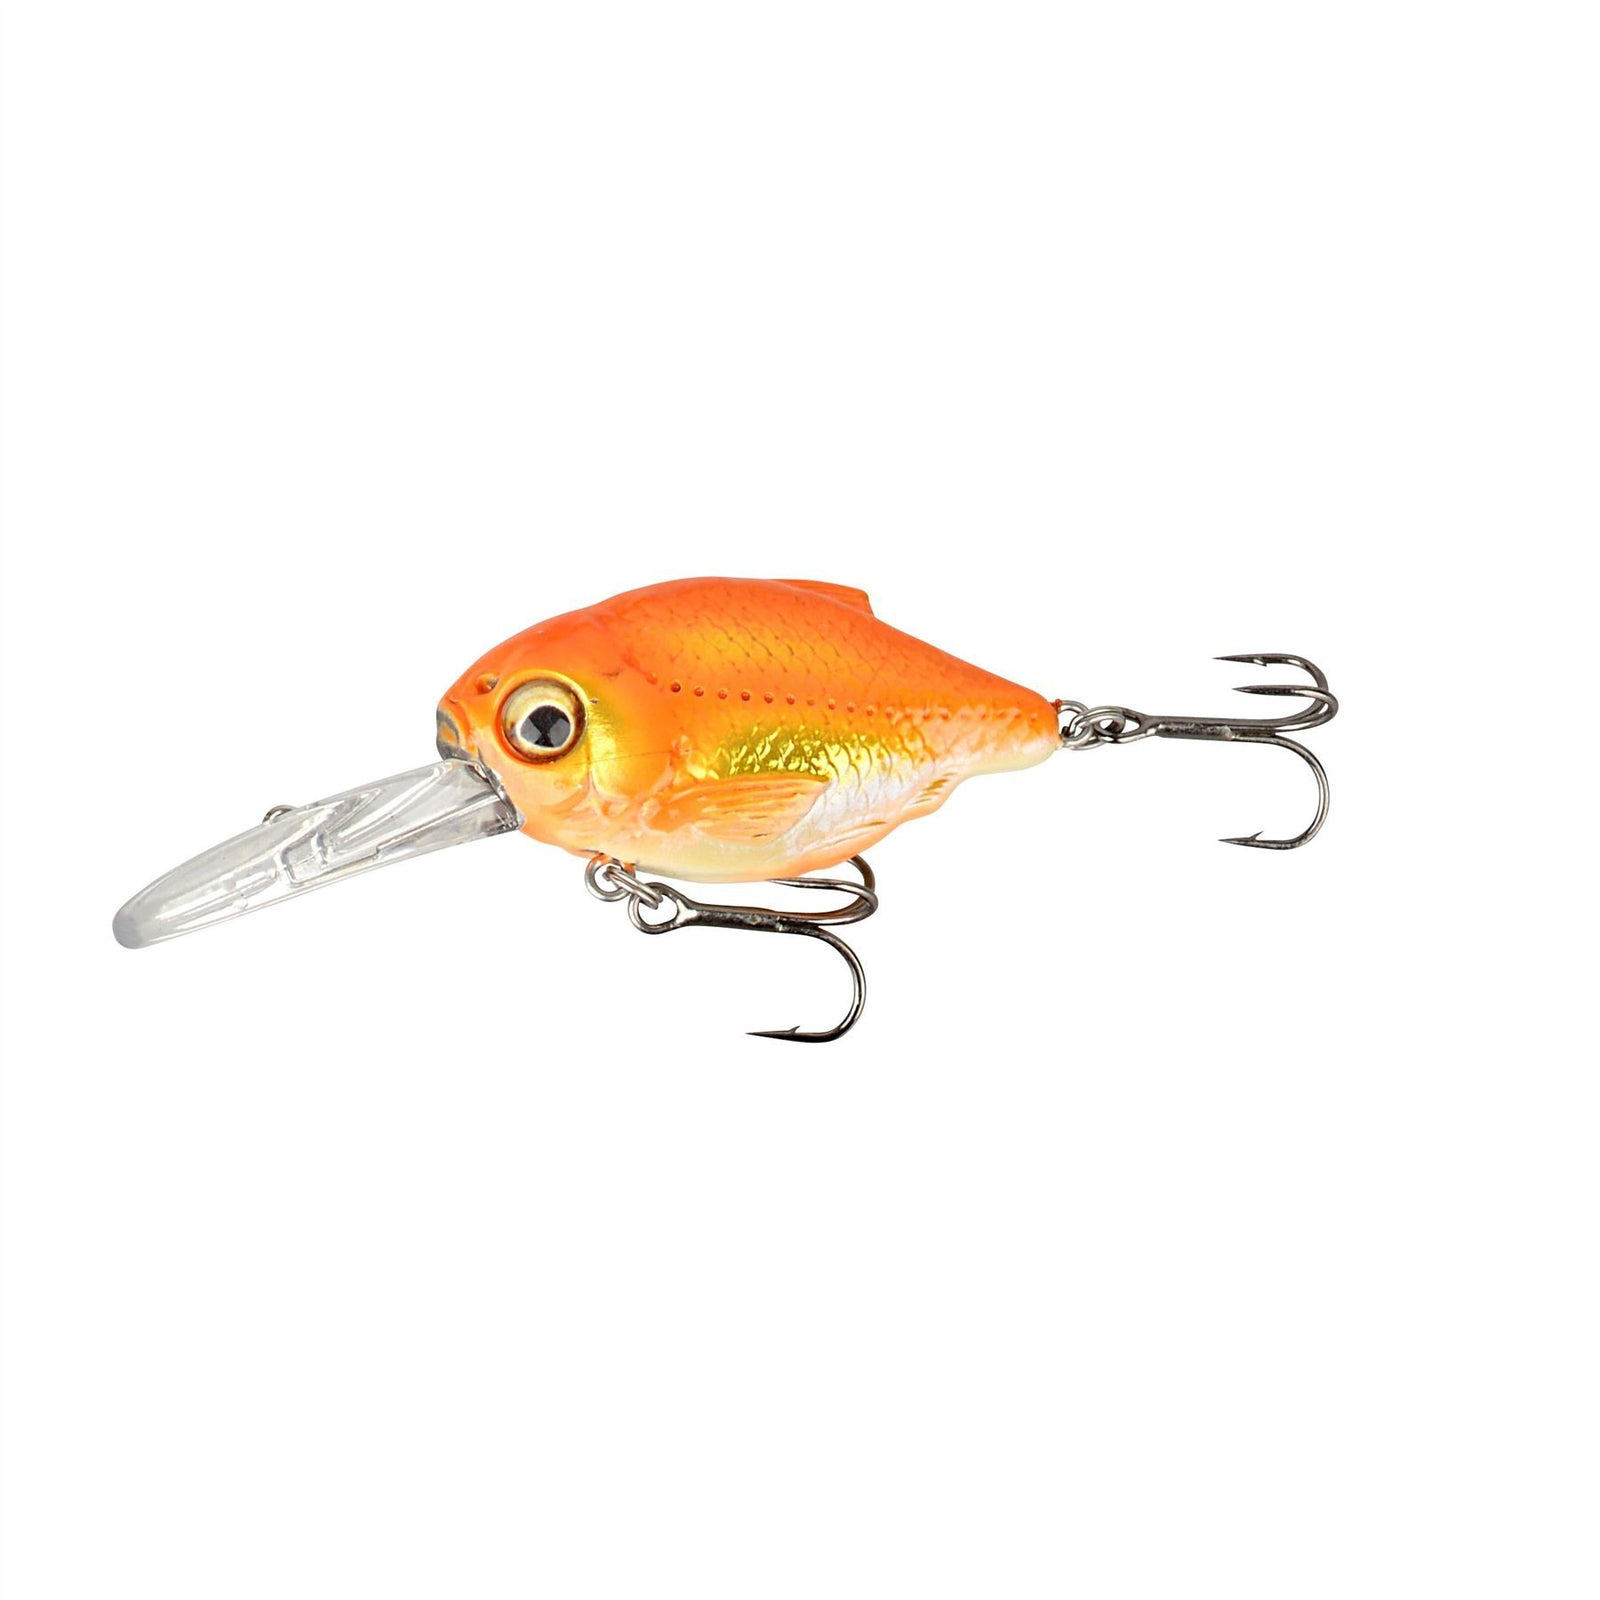 SAVAGE GEAR 3D Crucian Crank34 3.4cm 3.4g SF DR 02-Goldfish lure - reid outdoors